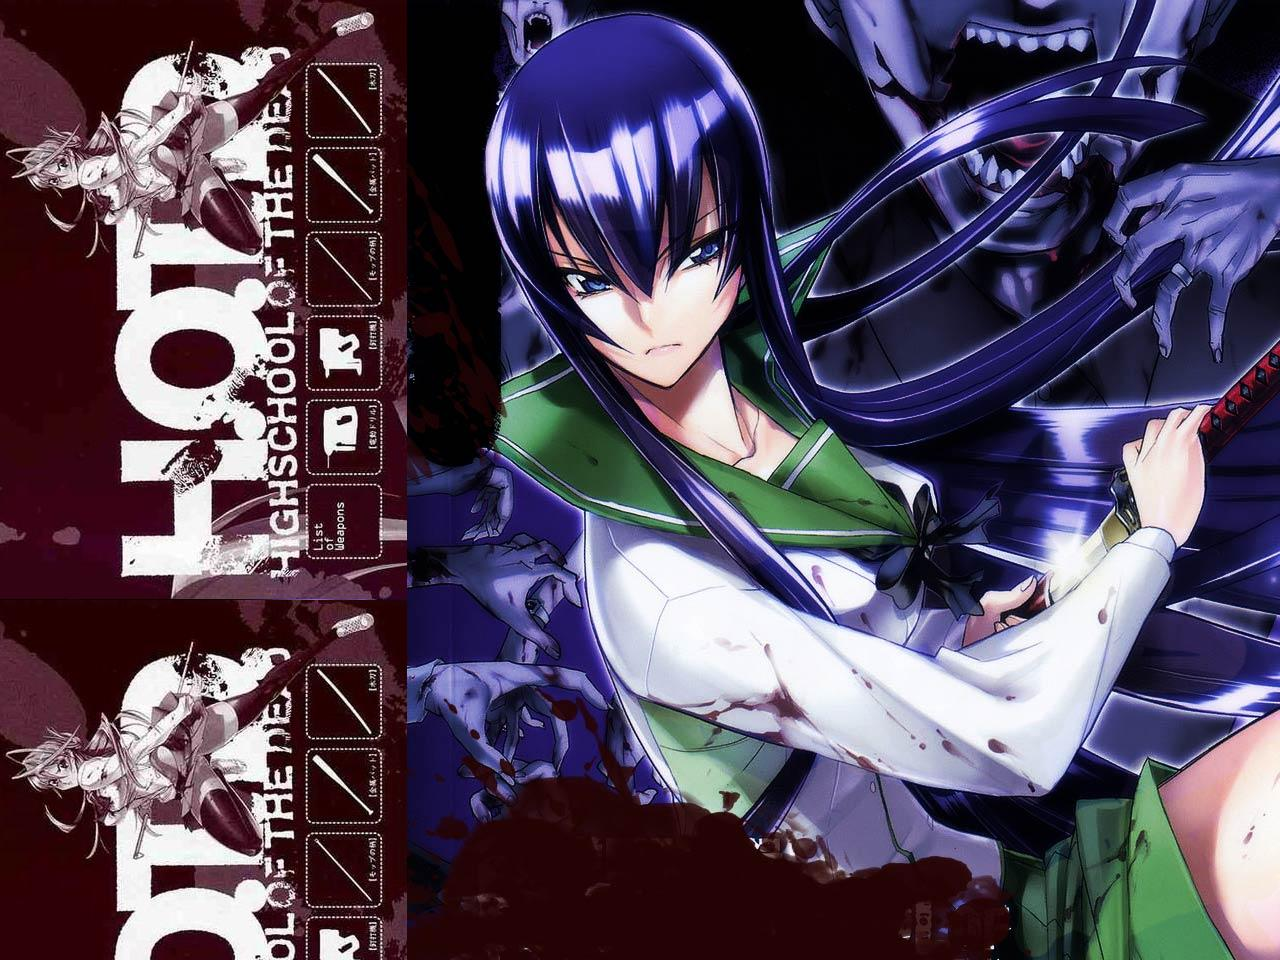 Anime Review: H.O.T.D. High School Of The Dead (2010)